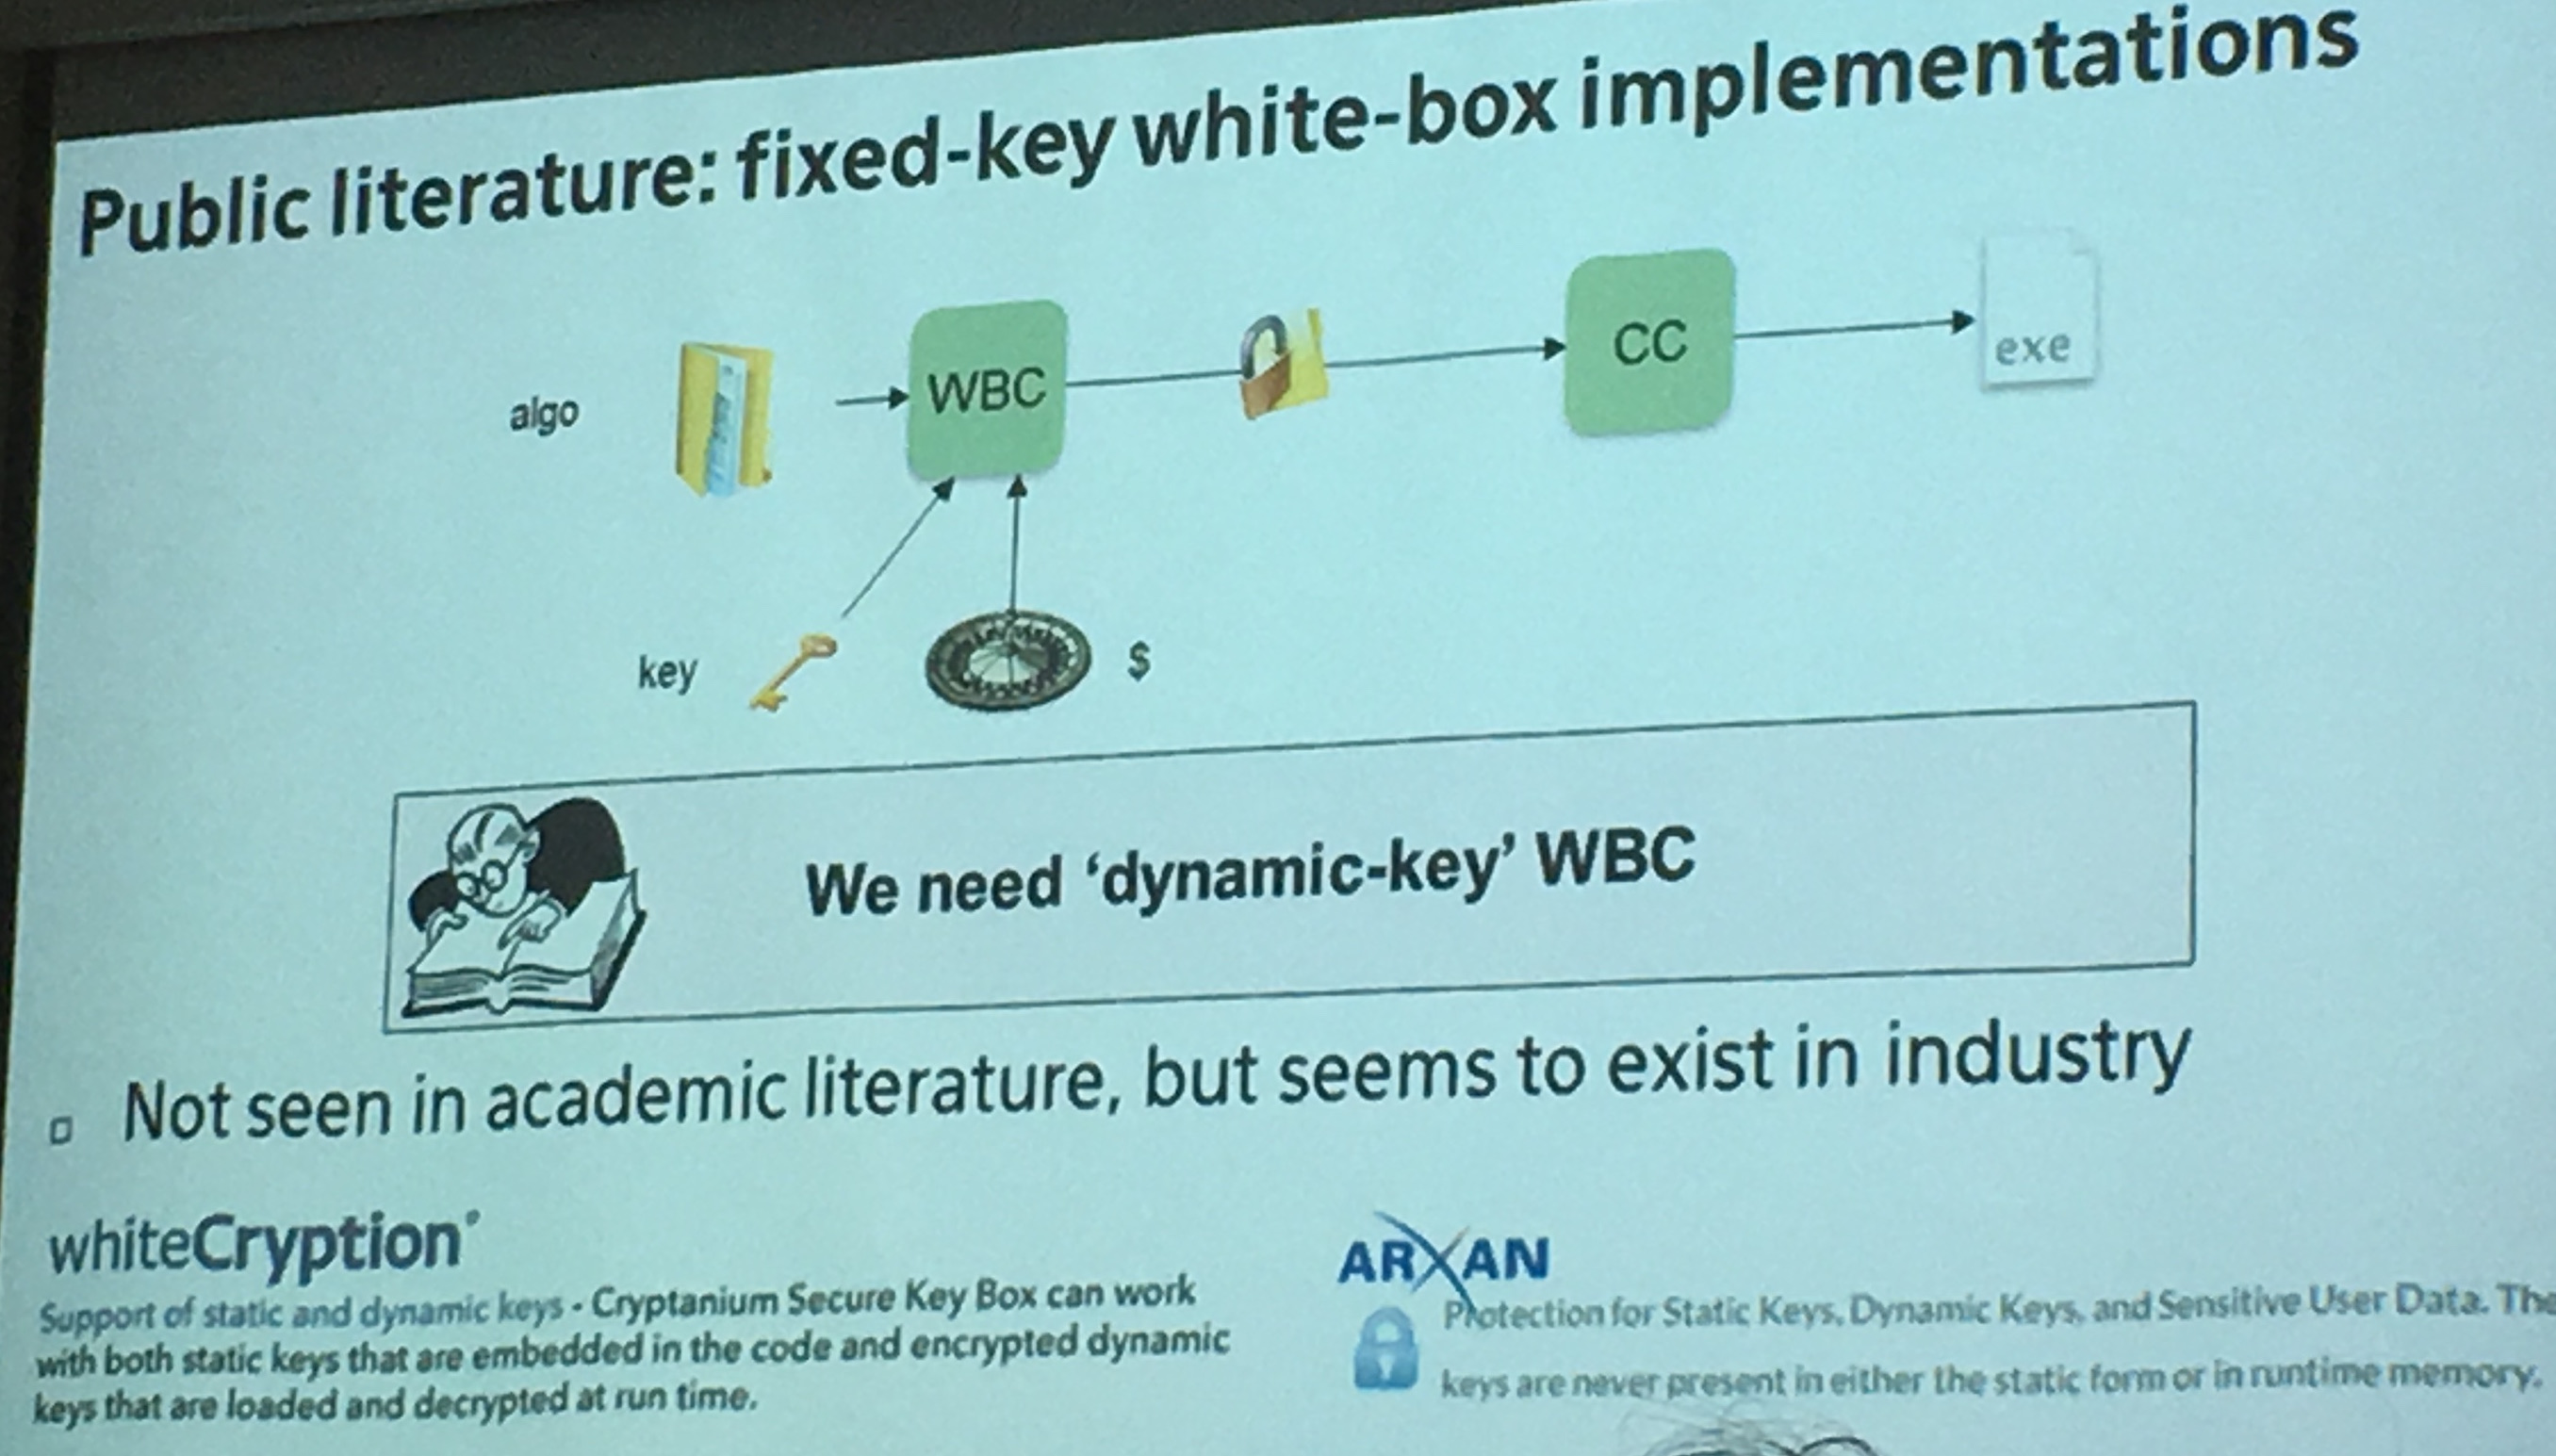 fixed-key white-box crypto